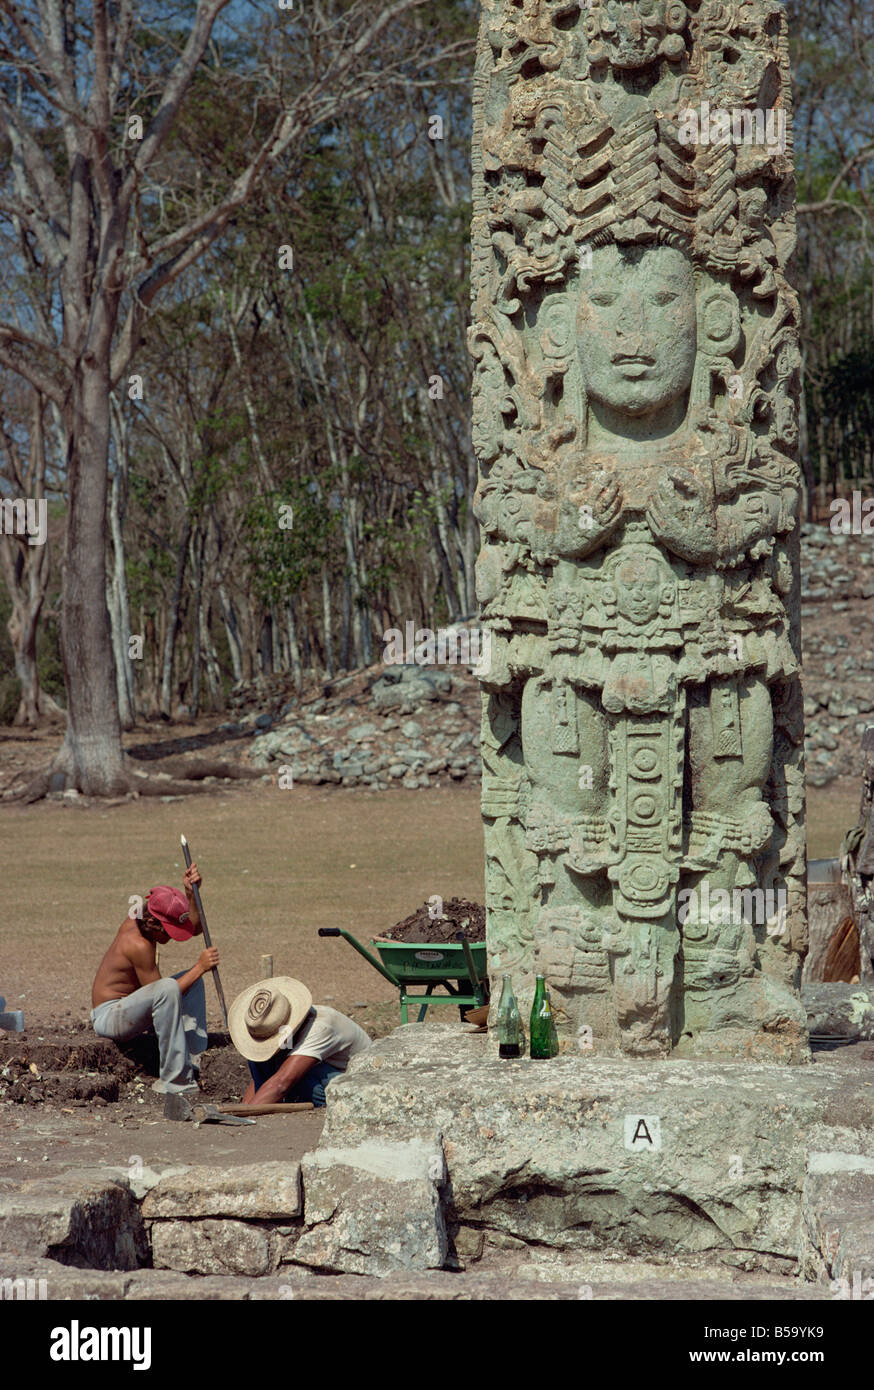 men excavating beside the Main Court Stela in the Mayan ruins at Copan, UNESCO World Heritage Site, Honduras, Central - Stock Image